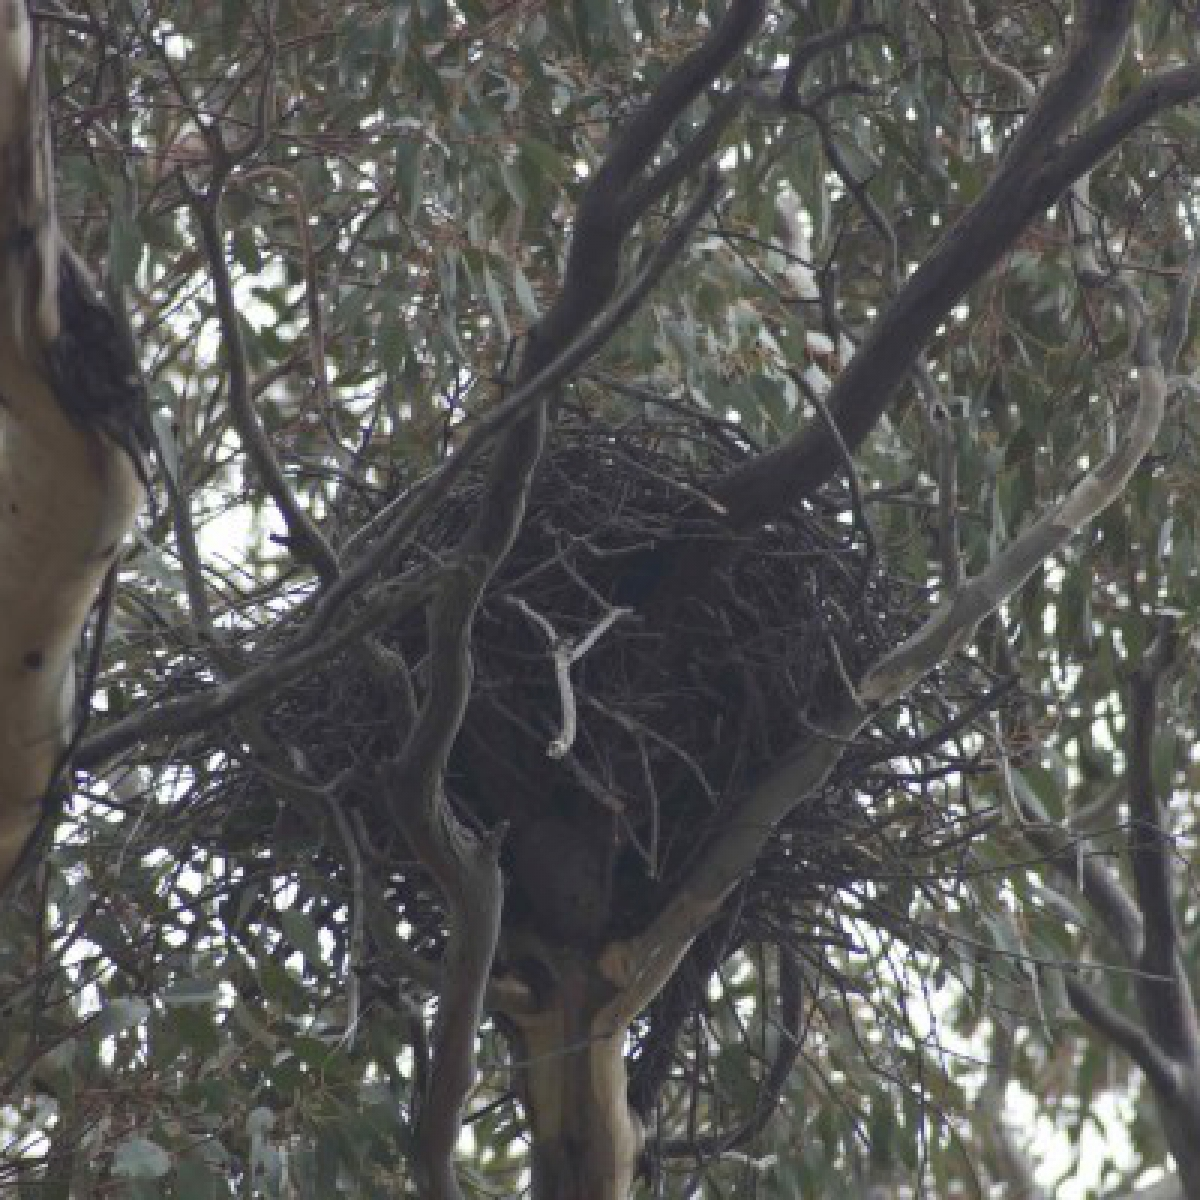 2010 The avian builders in Namadgi